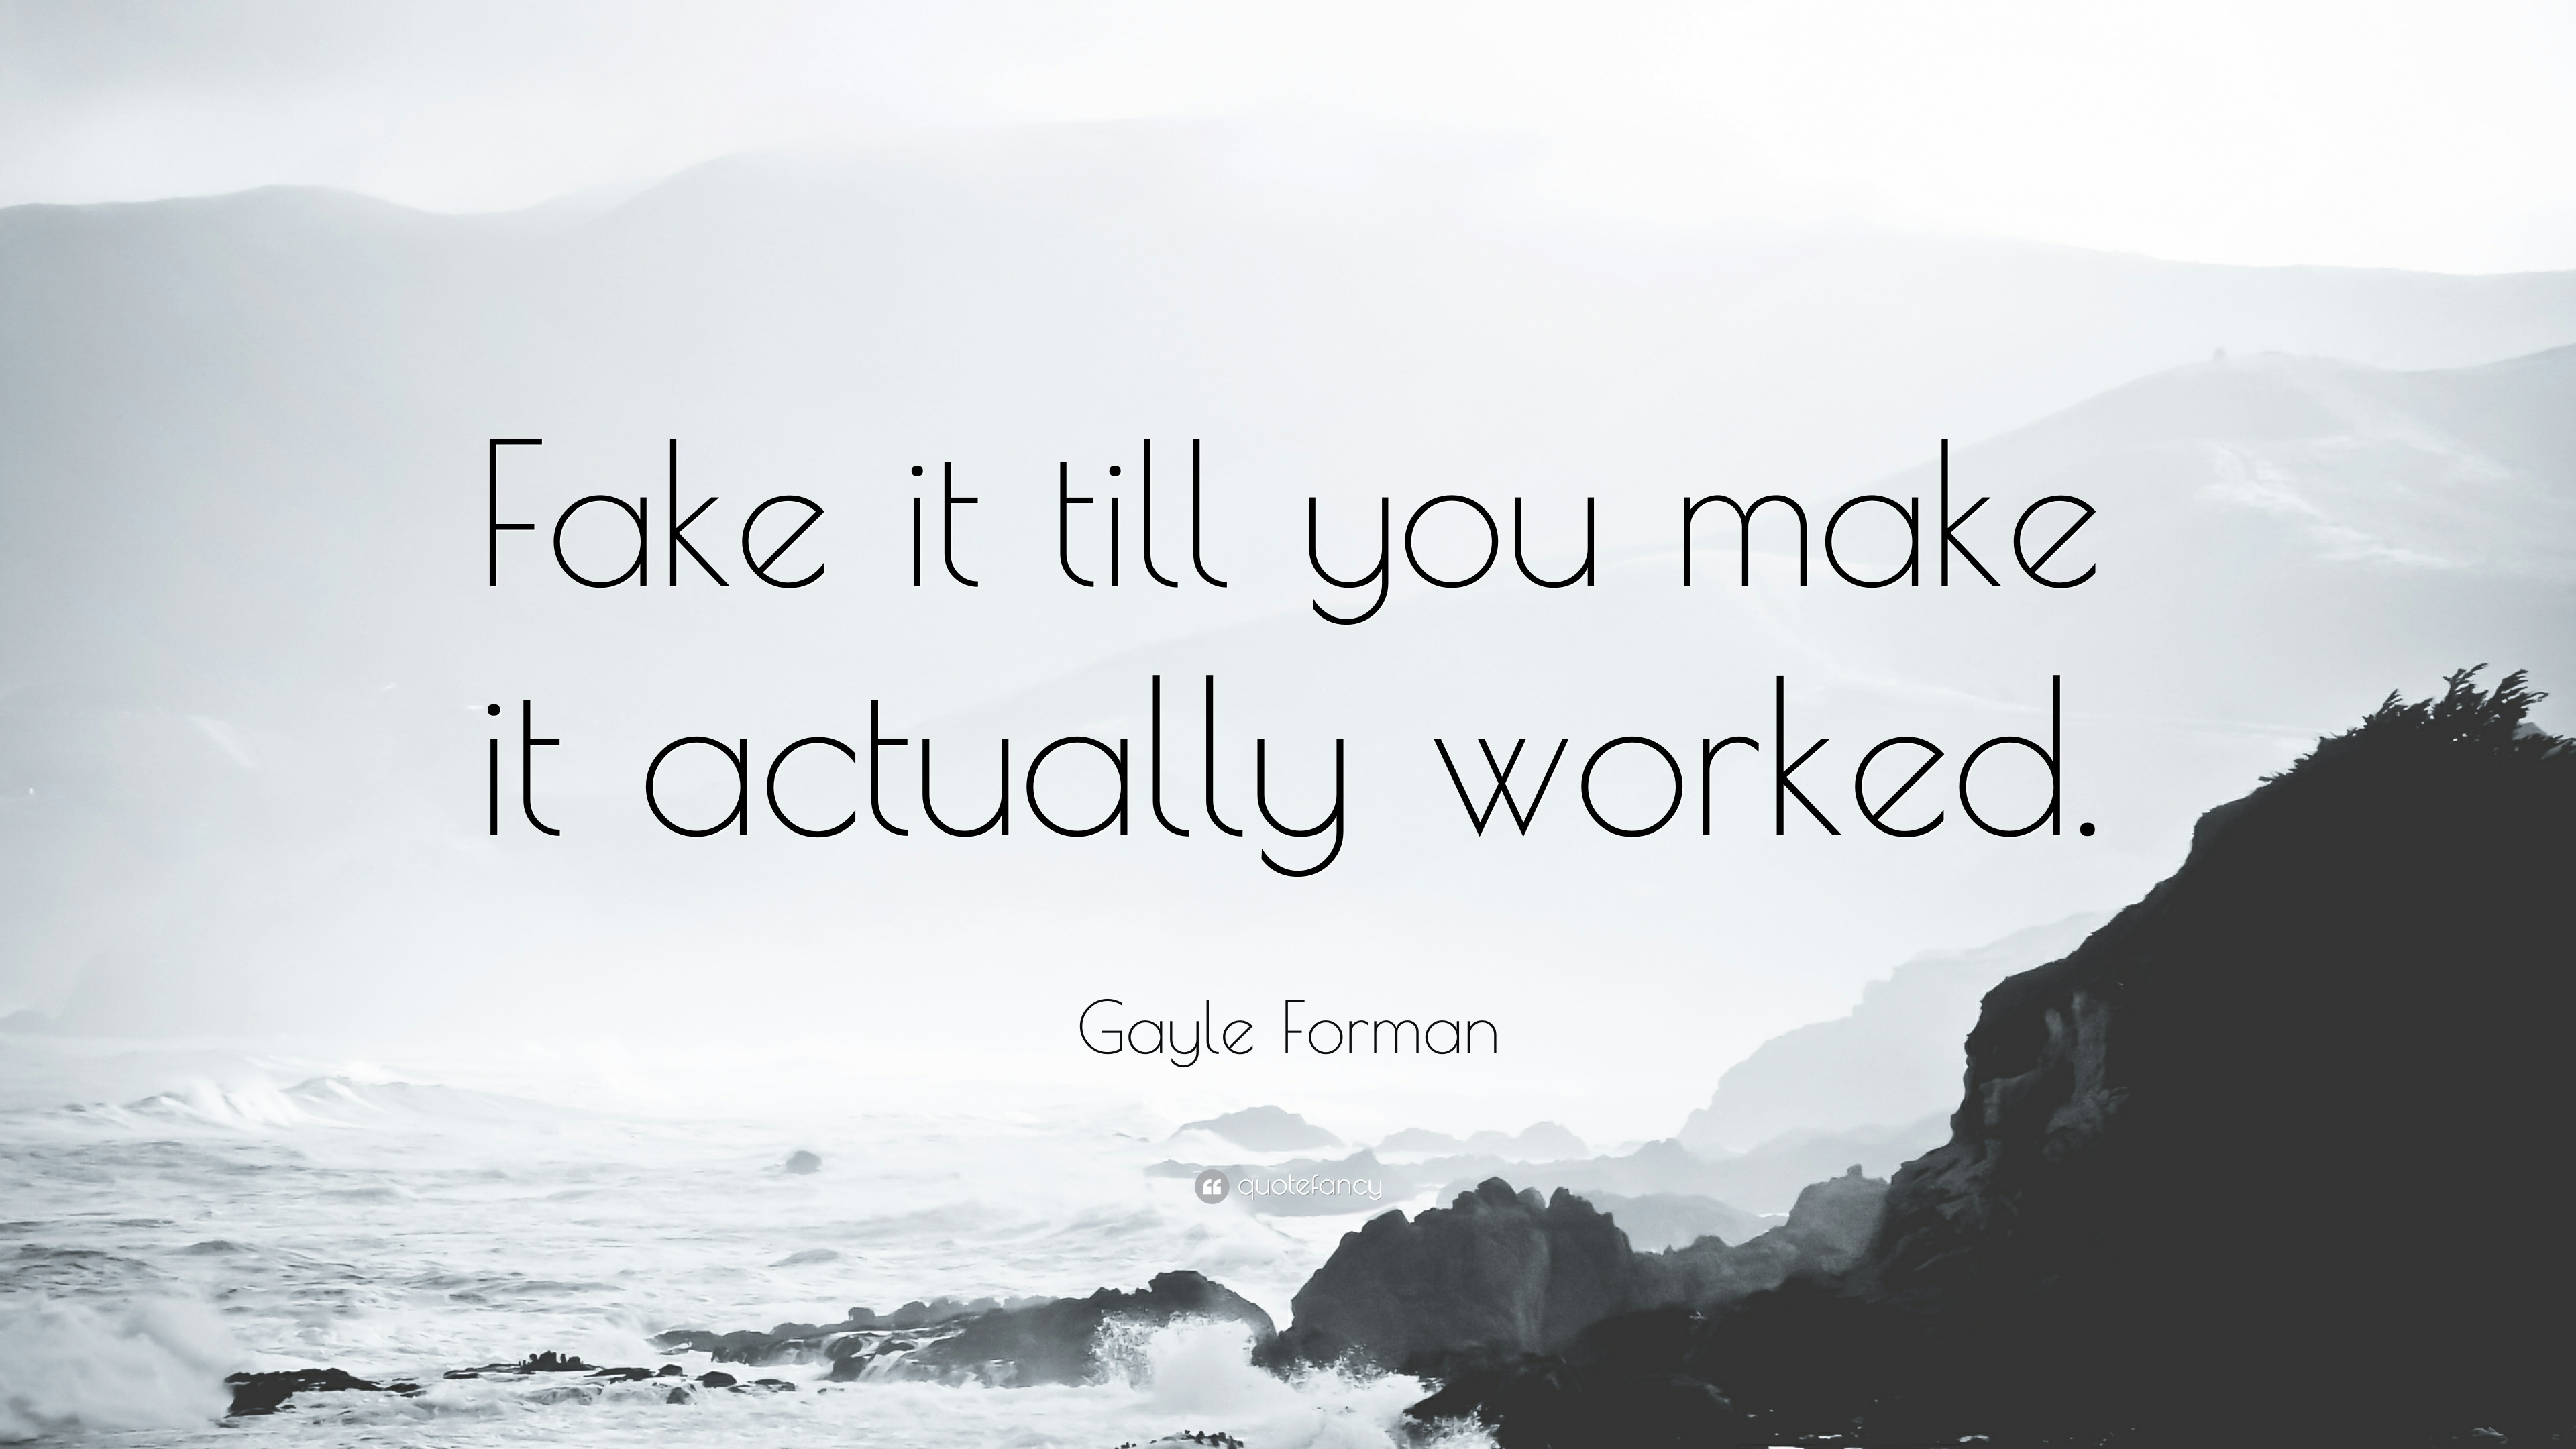 gayle forman quote: